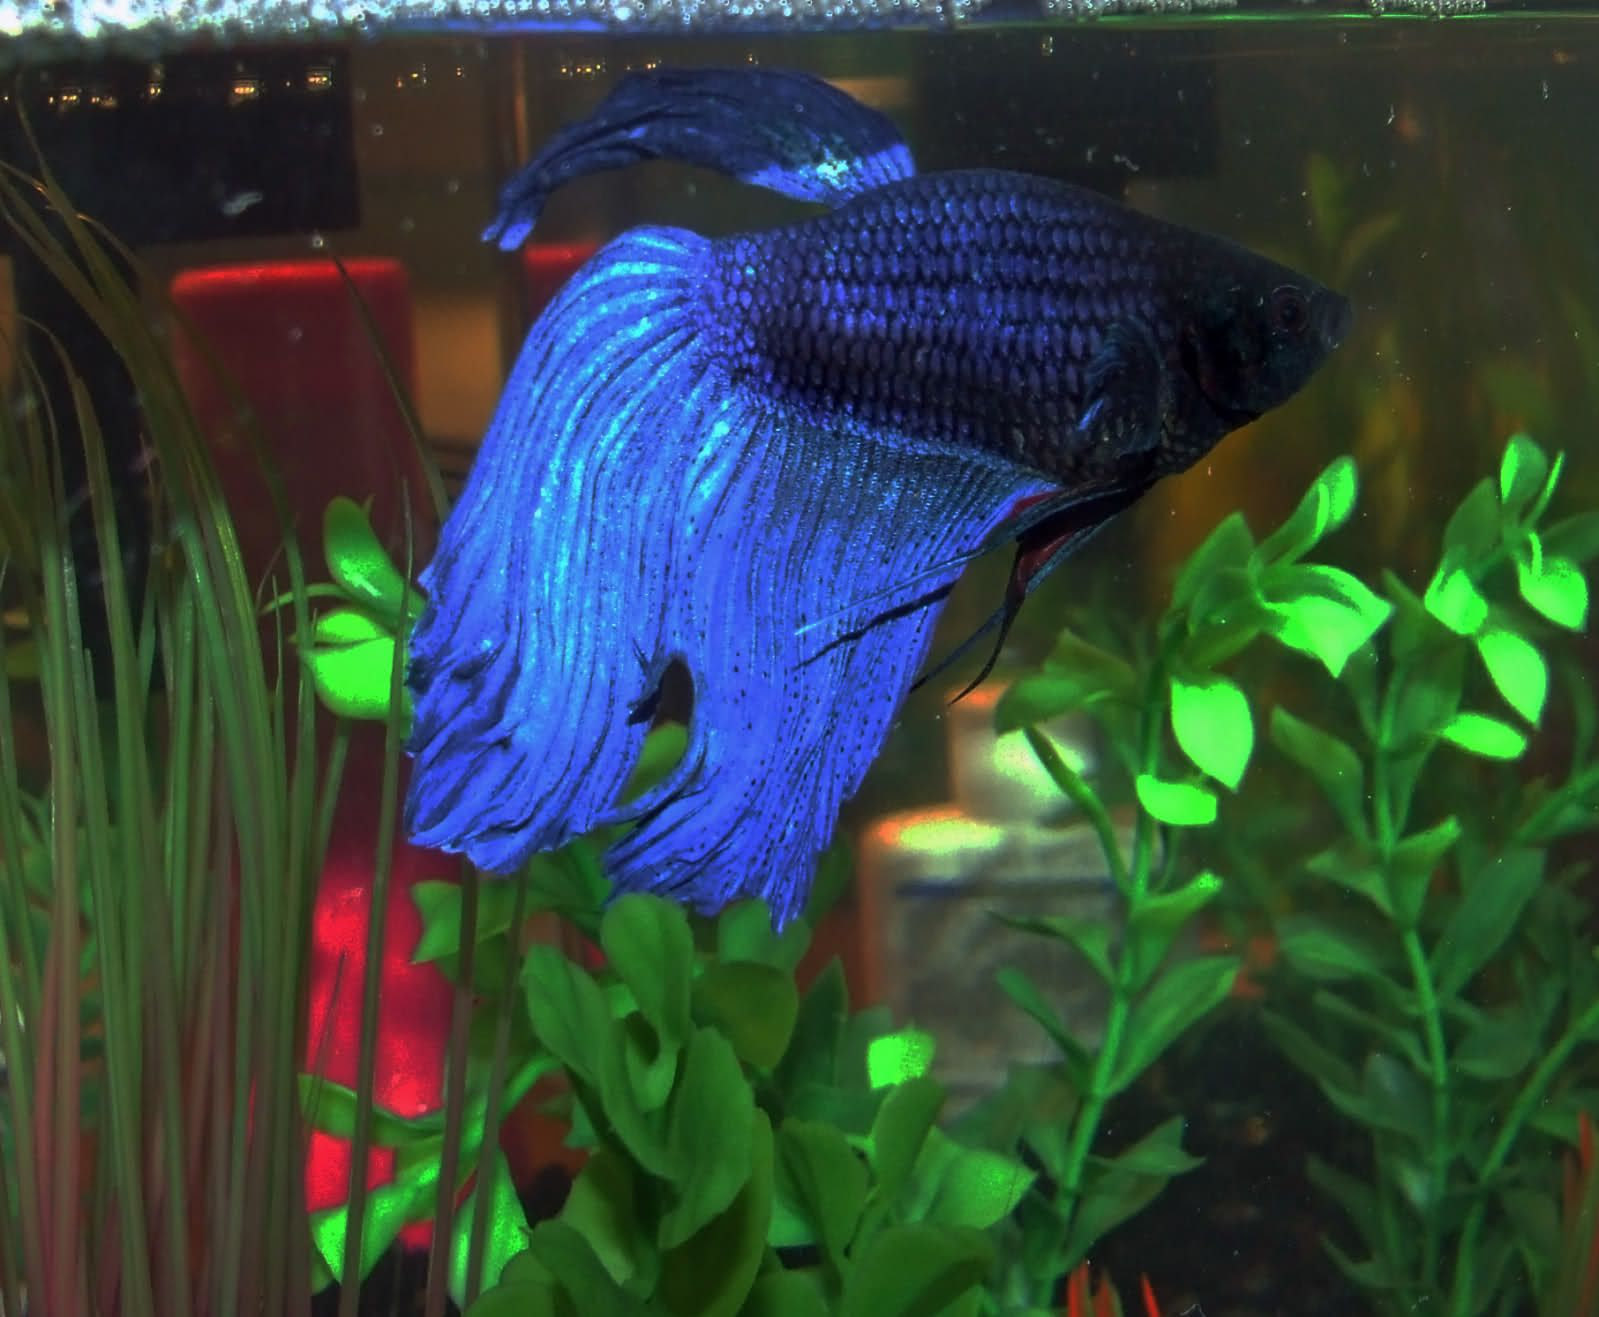 Top 15 Beautiful Types of Betta Fish with Amazing Pictures | Betta ...